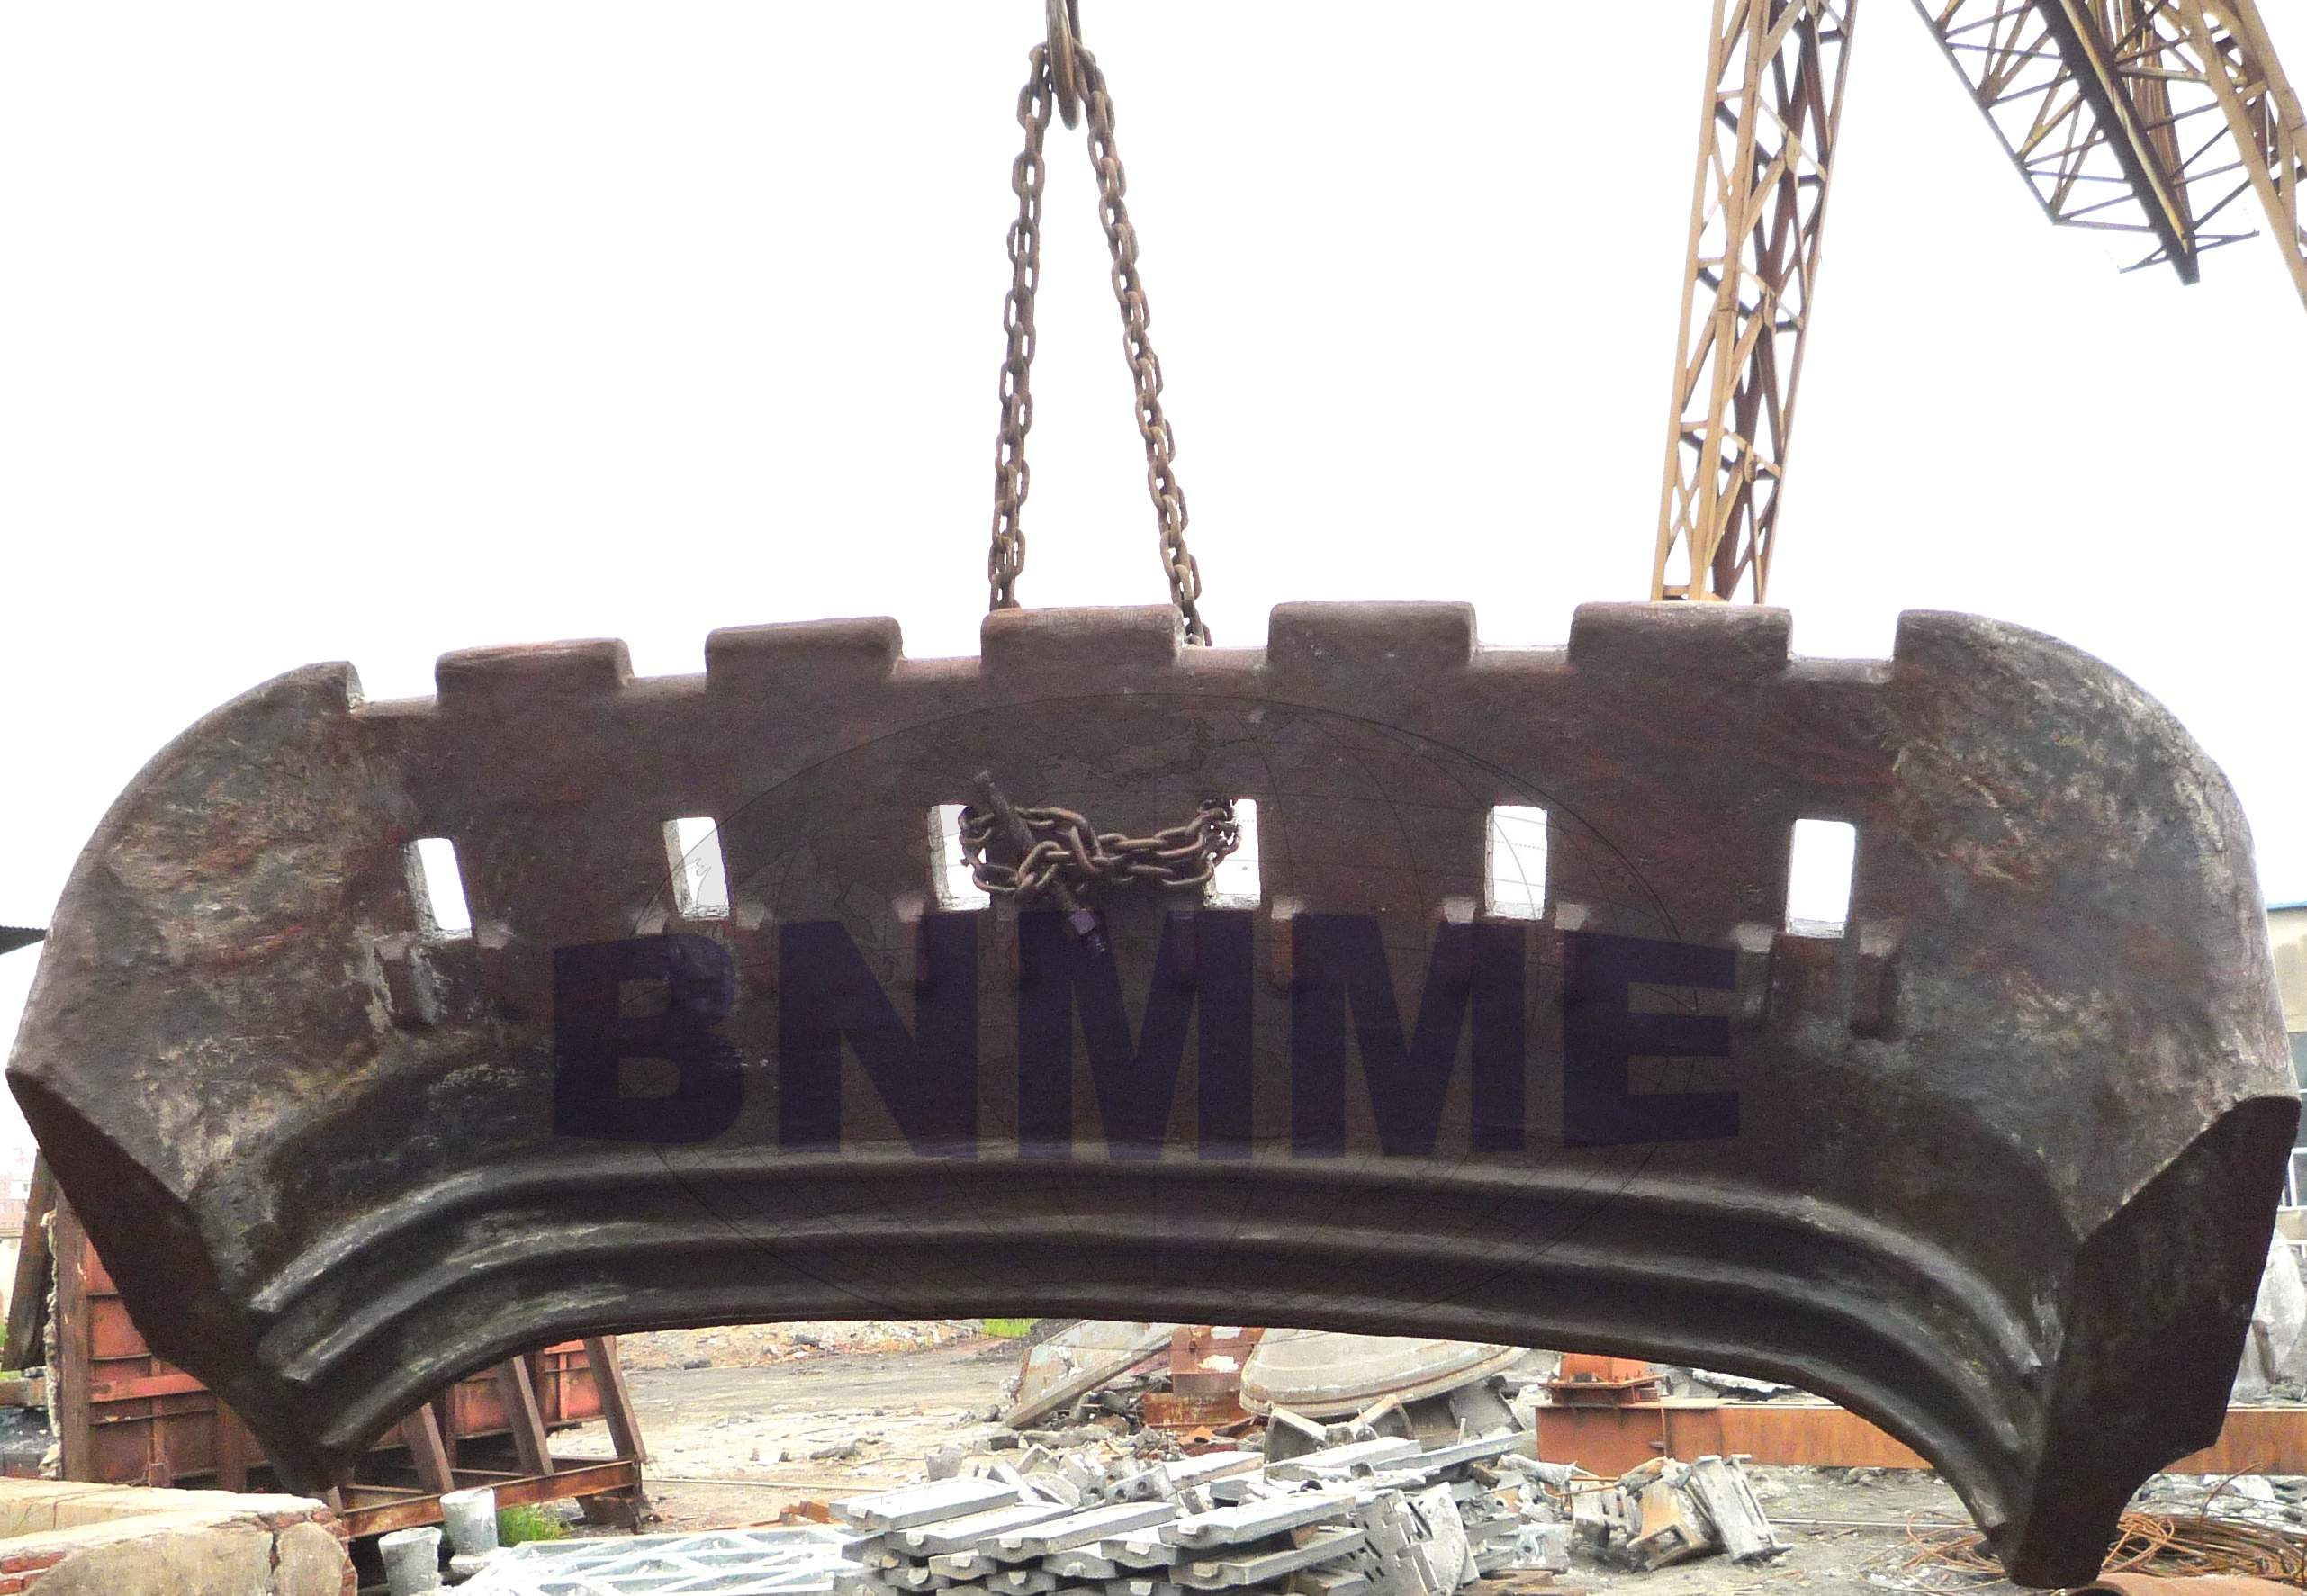 BNMME high manganese steel for heavy mining equipment